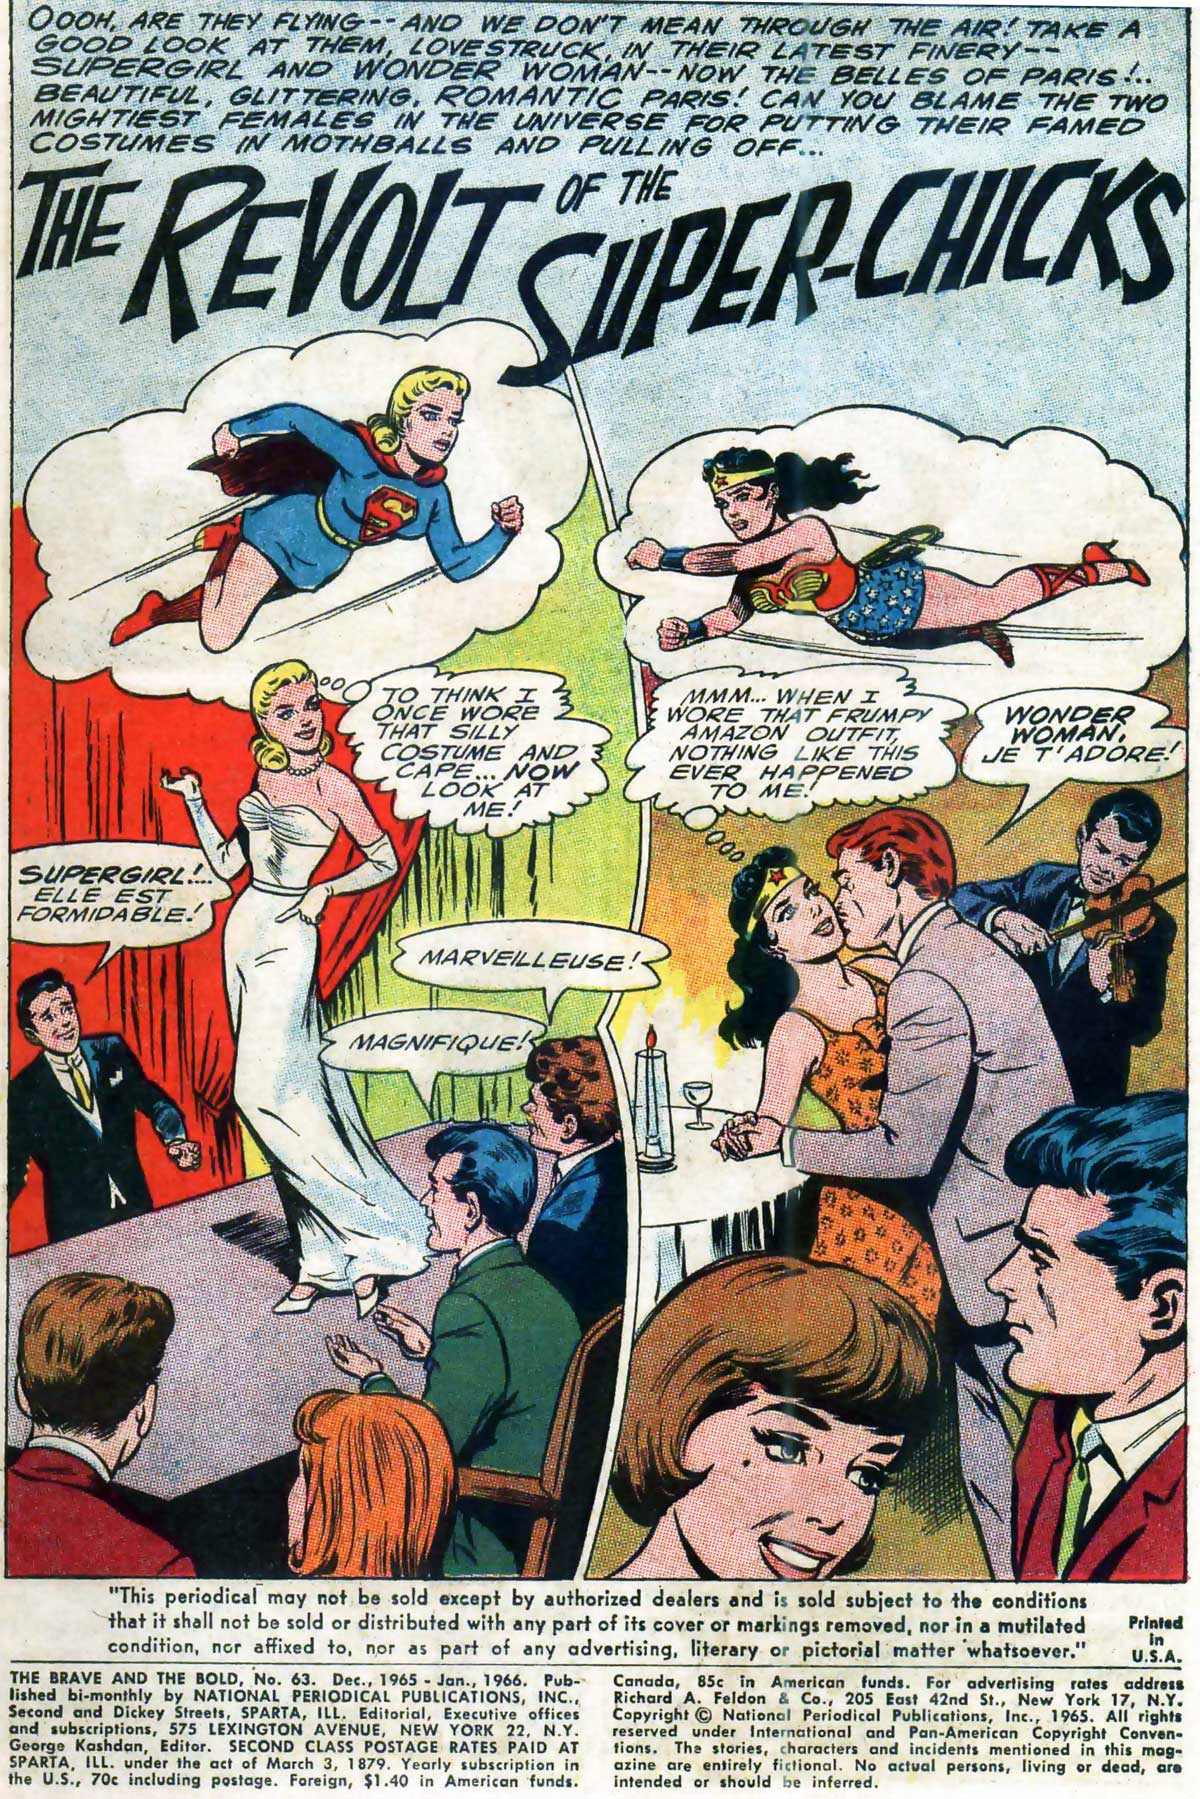 Brave and the Bold #63 featuring Supergirl and Wonder Woman by Bob Haney